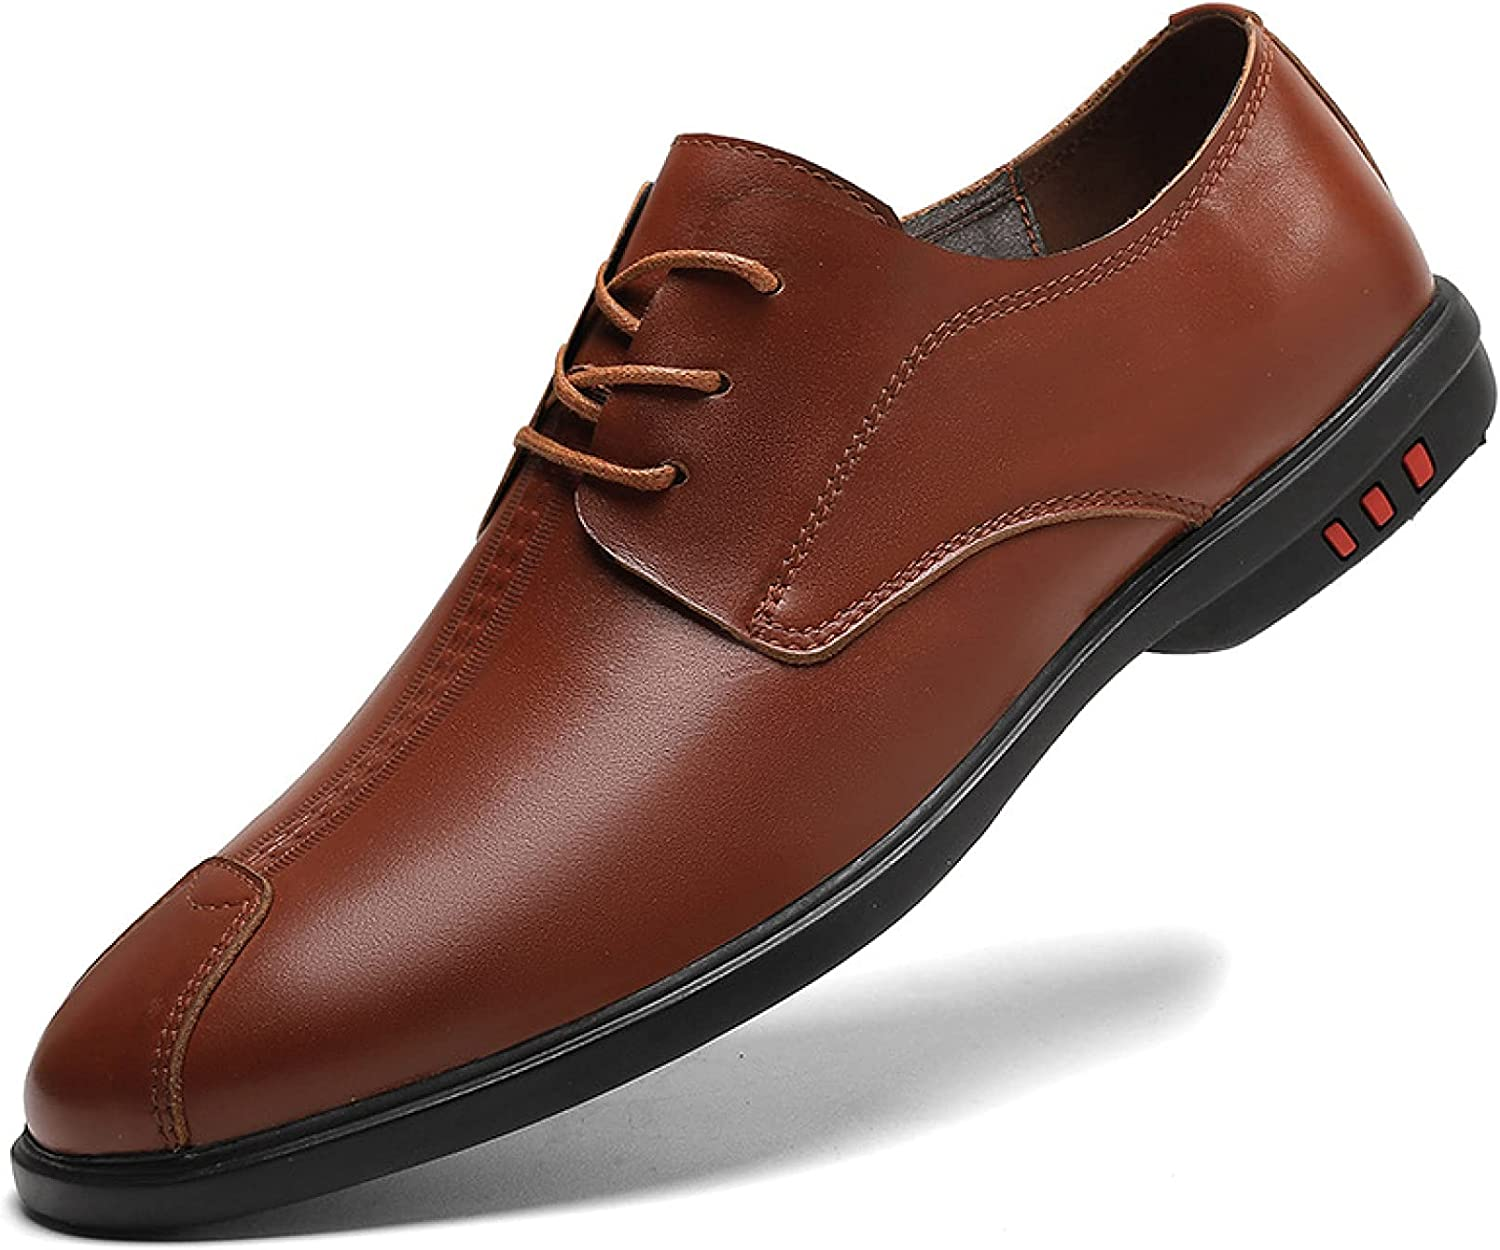 Mens Simplicity Fashionable Flat Loafer Penny Shoes Genuine Free shipping / New Leather Strappy